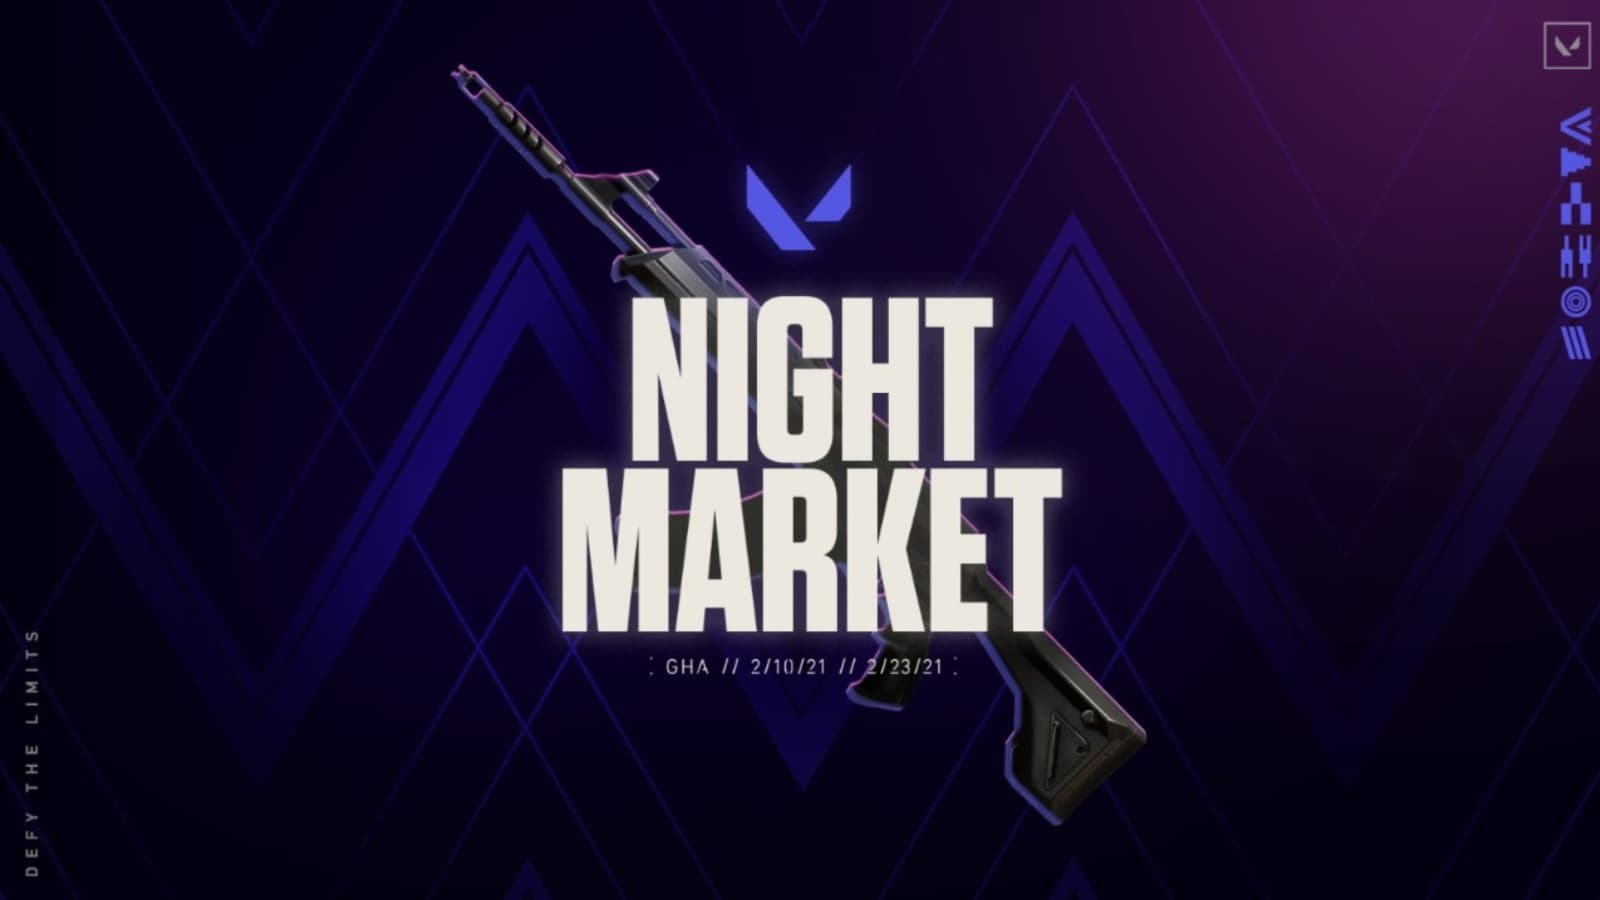 Valorant Night Market Coming soon and might be hinting at Deadeye